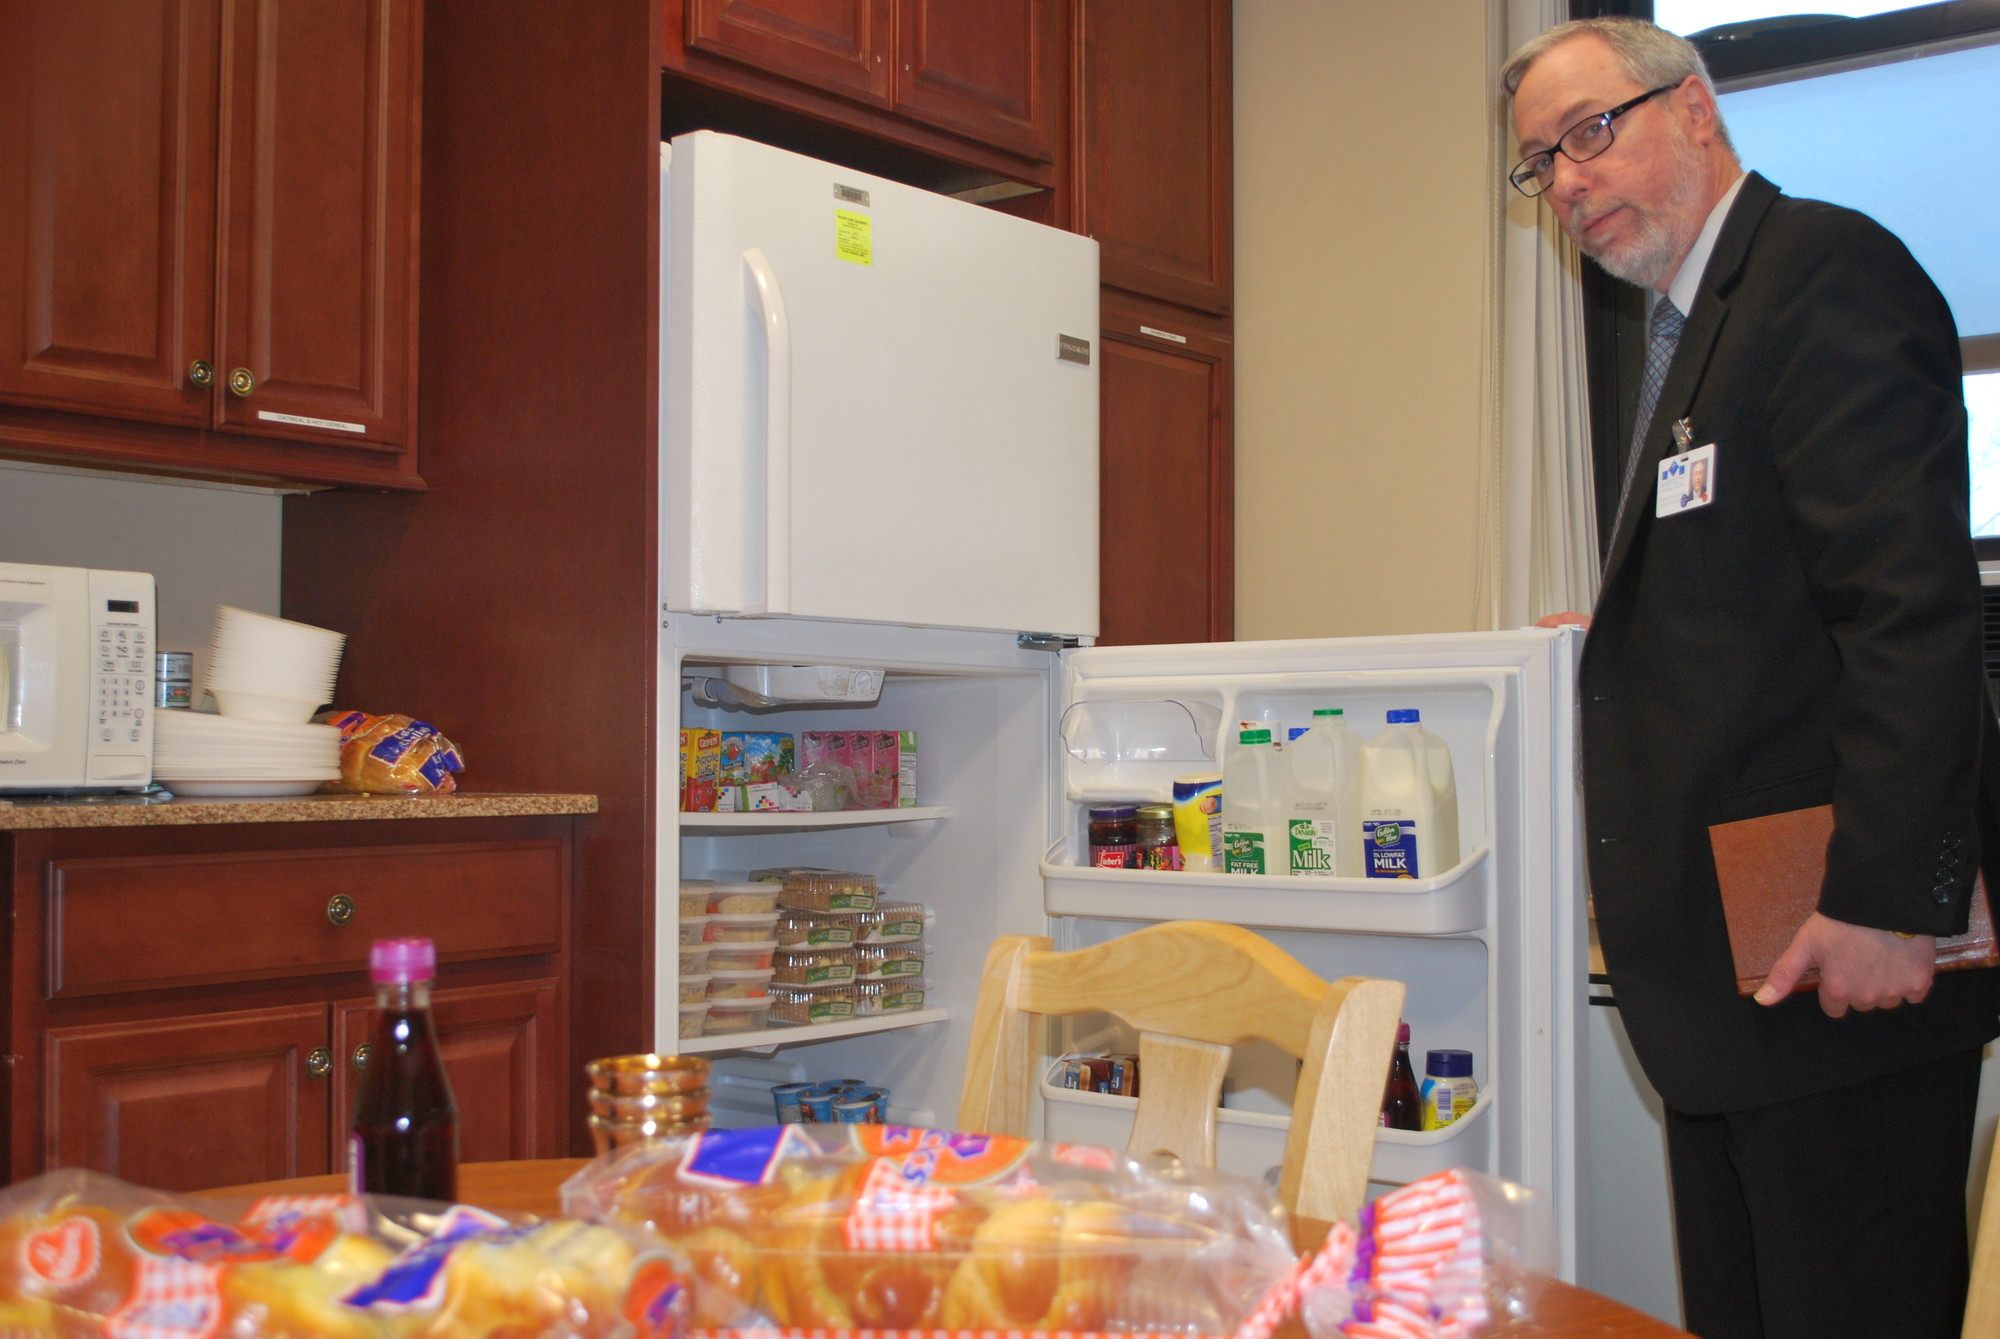 Mercy Medical Center accommodates the needs of Orthodox Jewish patients and their families with a kosher kitchen.